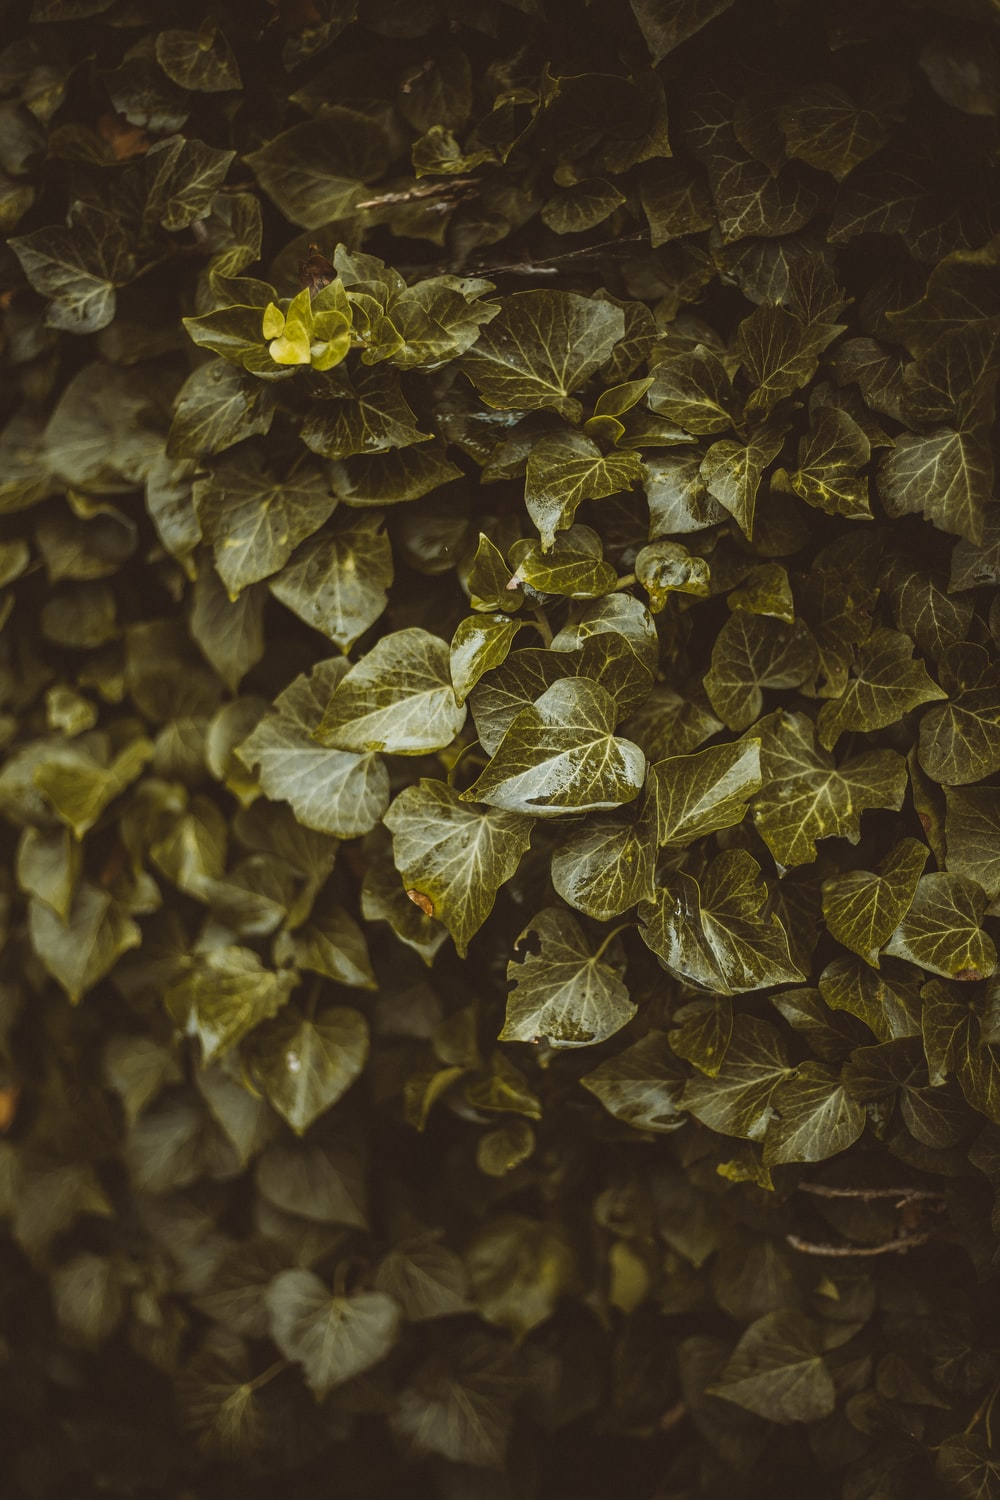 yellow and green leaves in close up photography